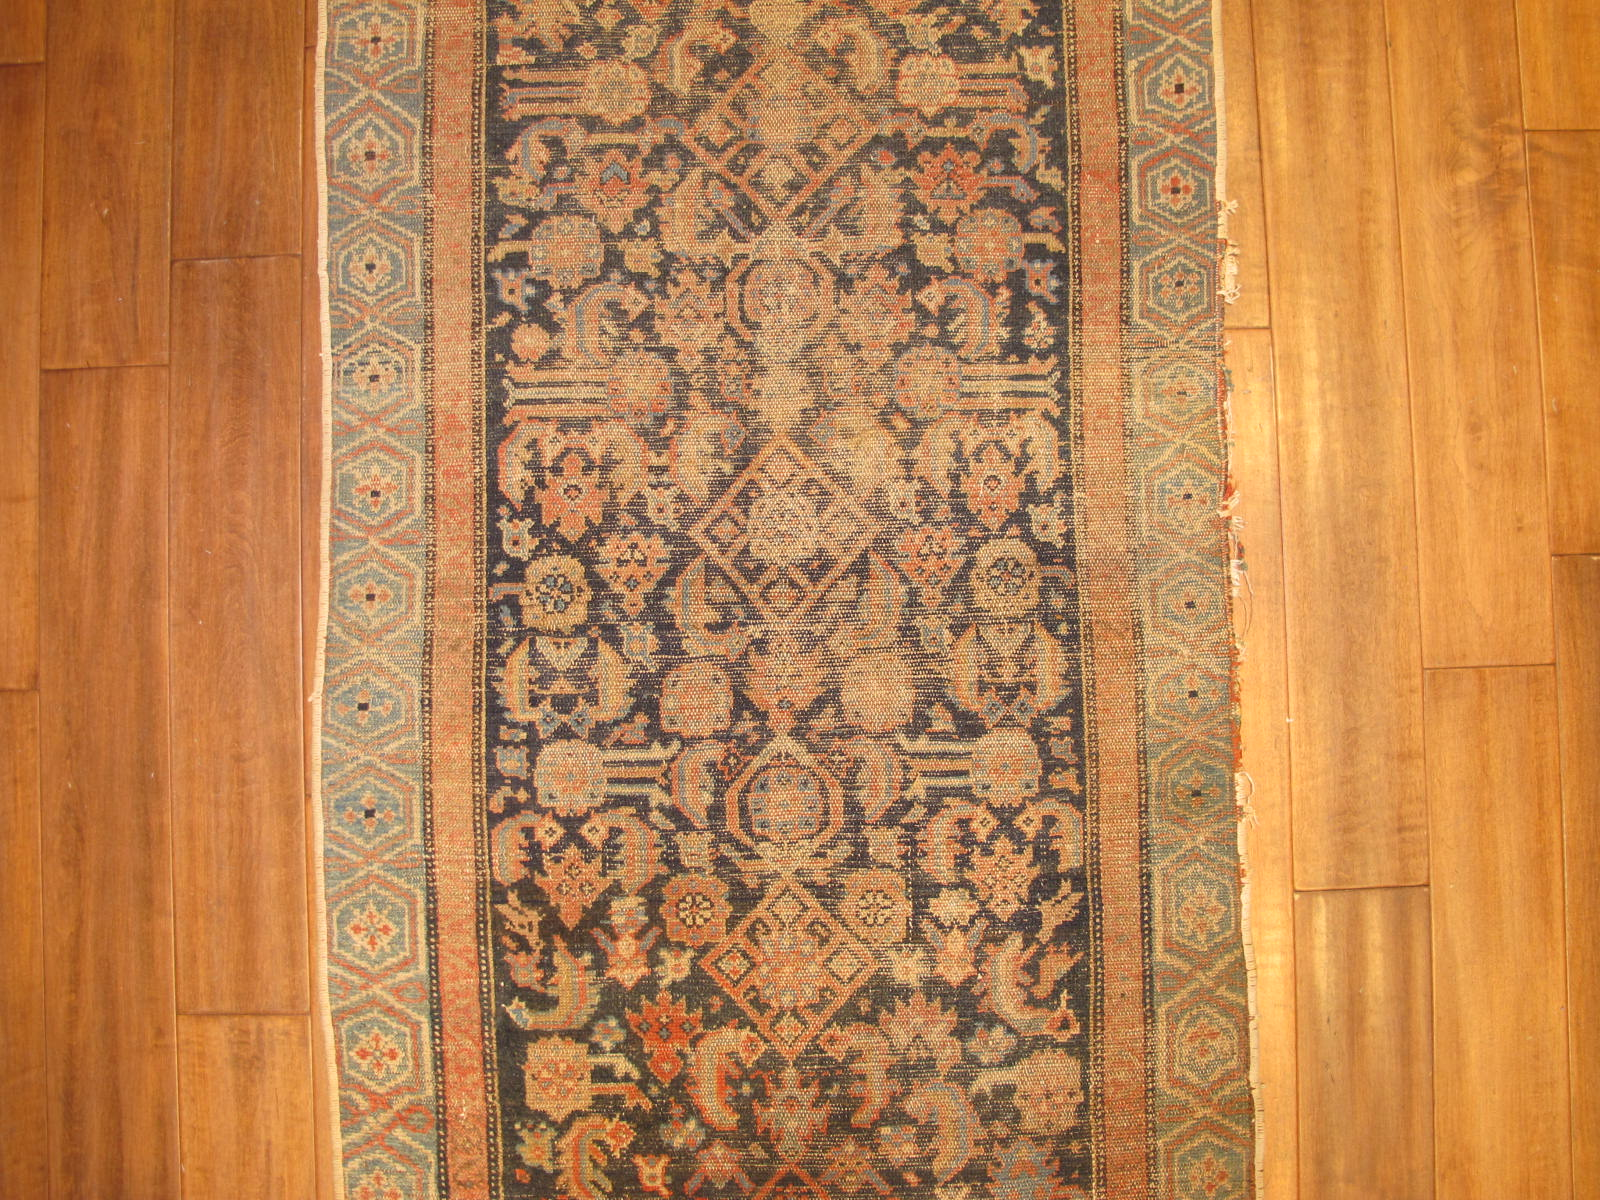 13099 antique persian malayer runner 2,9 x 10,4 (3)